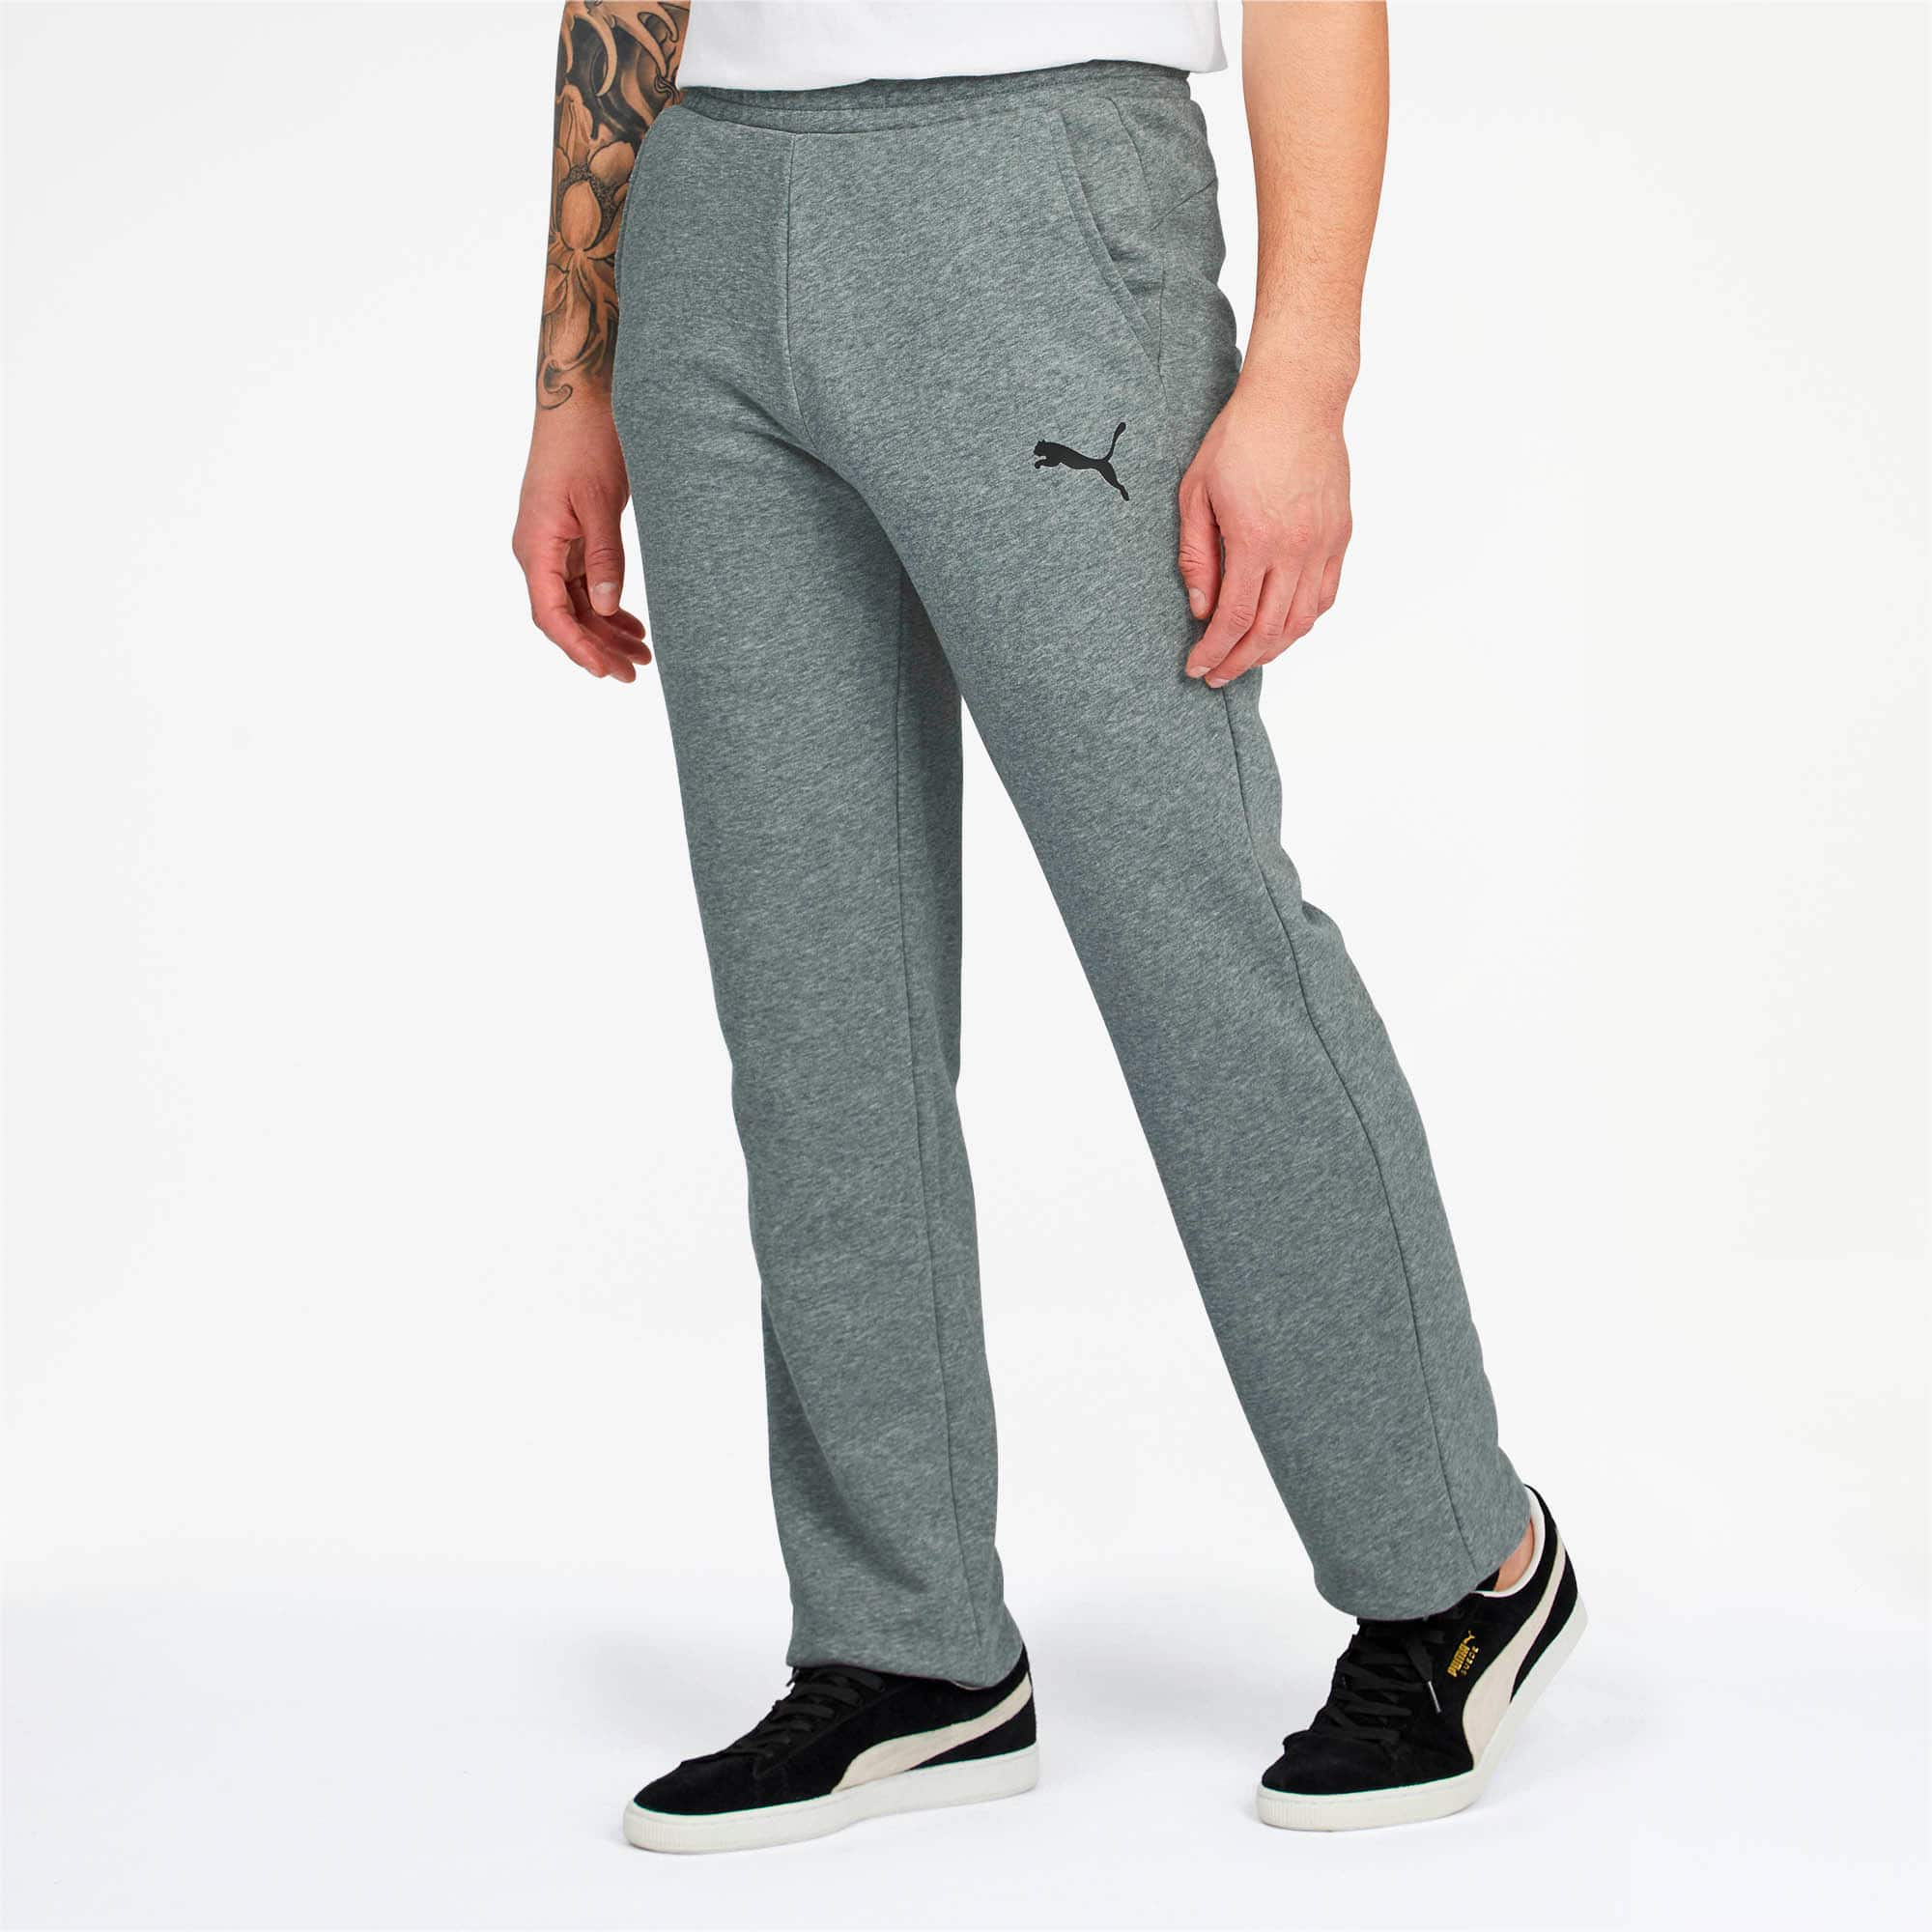 Men's PUMA Essentials Sweatpants (Grey, S or M)